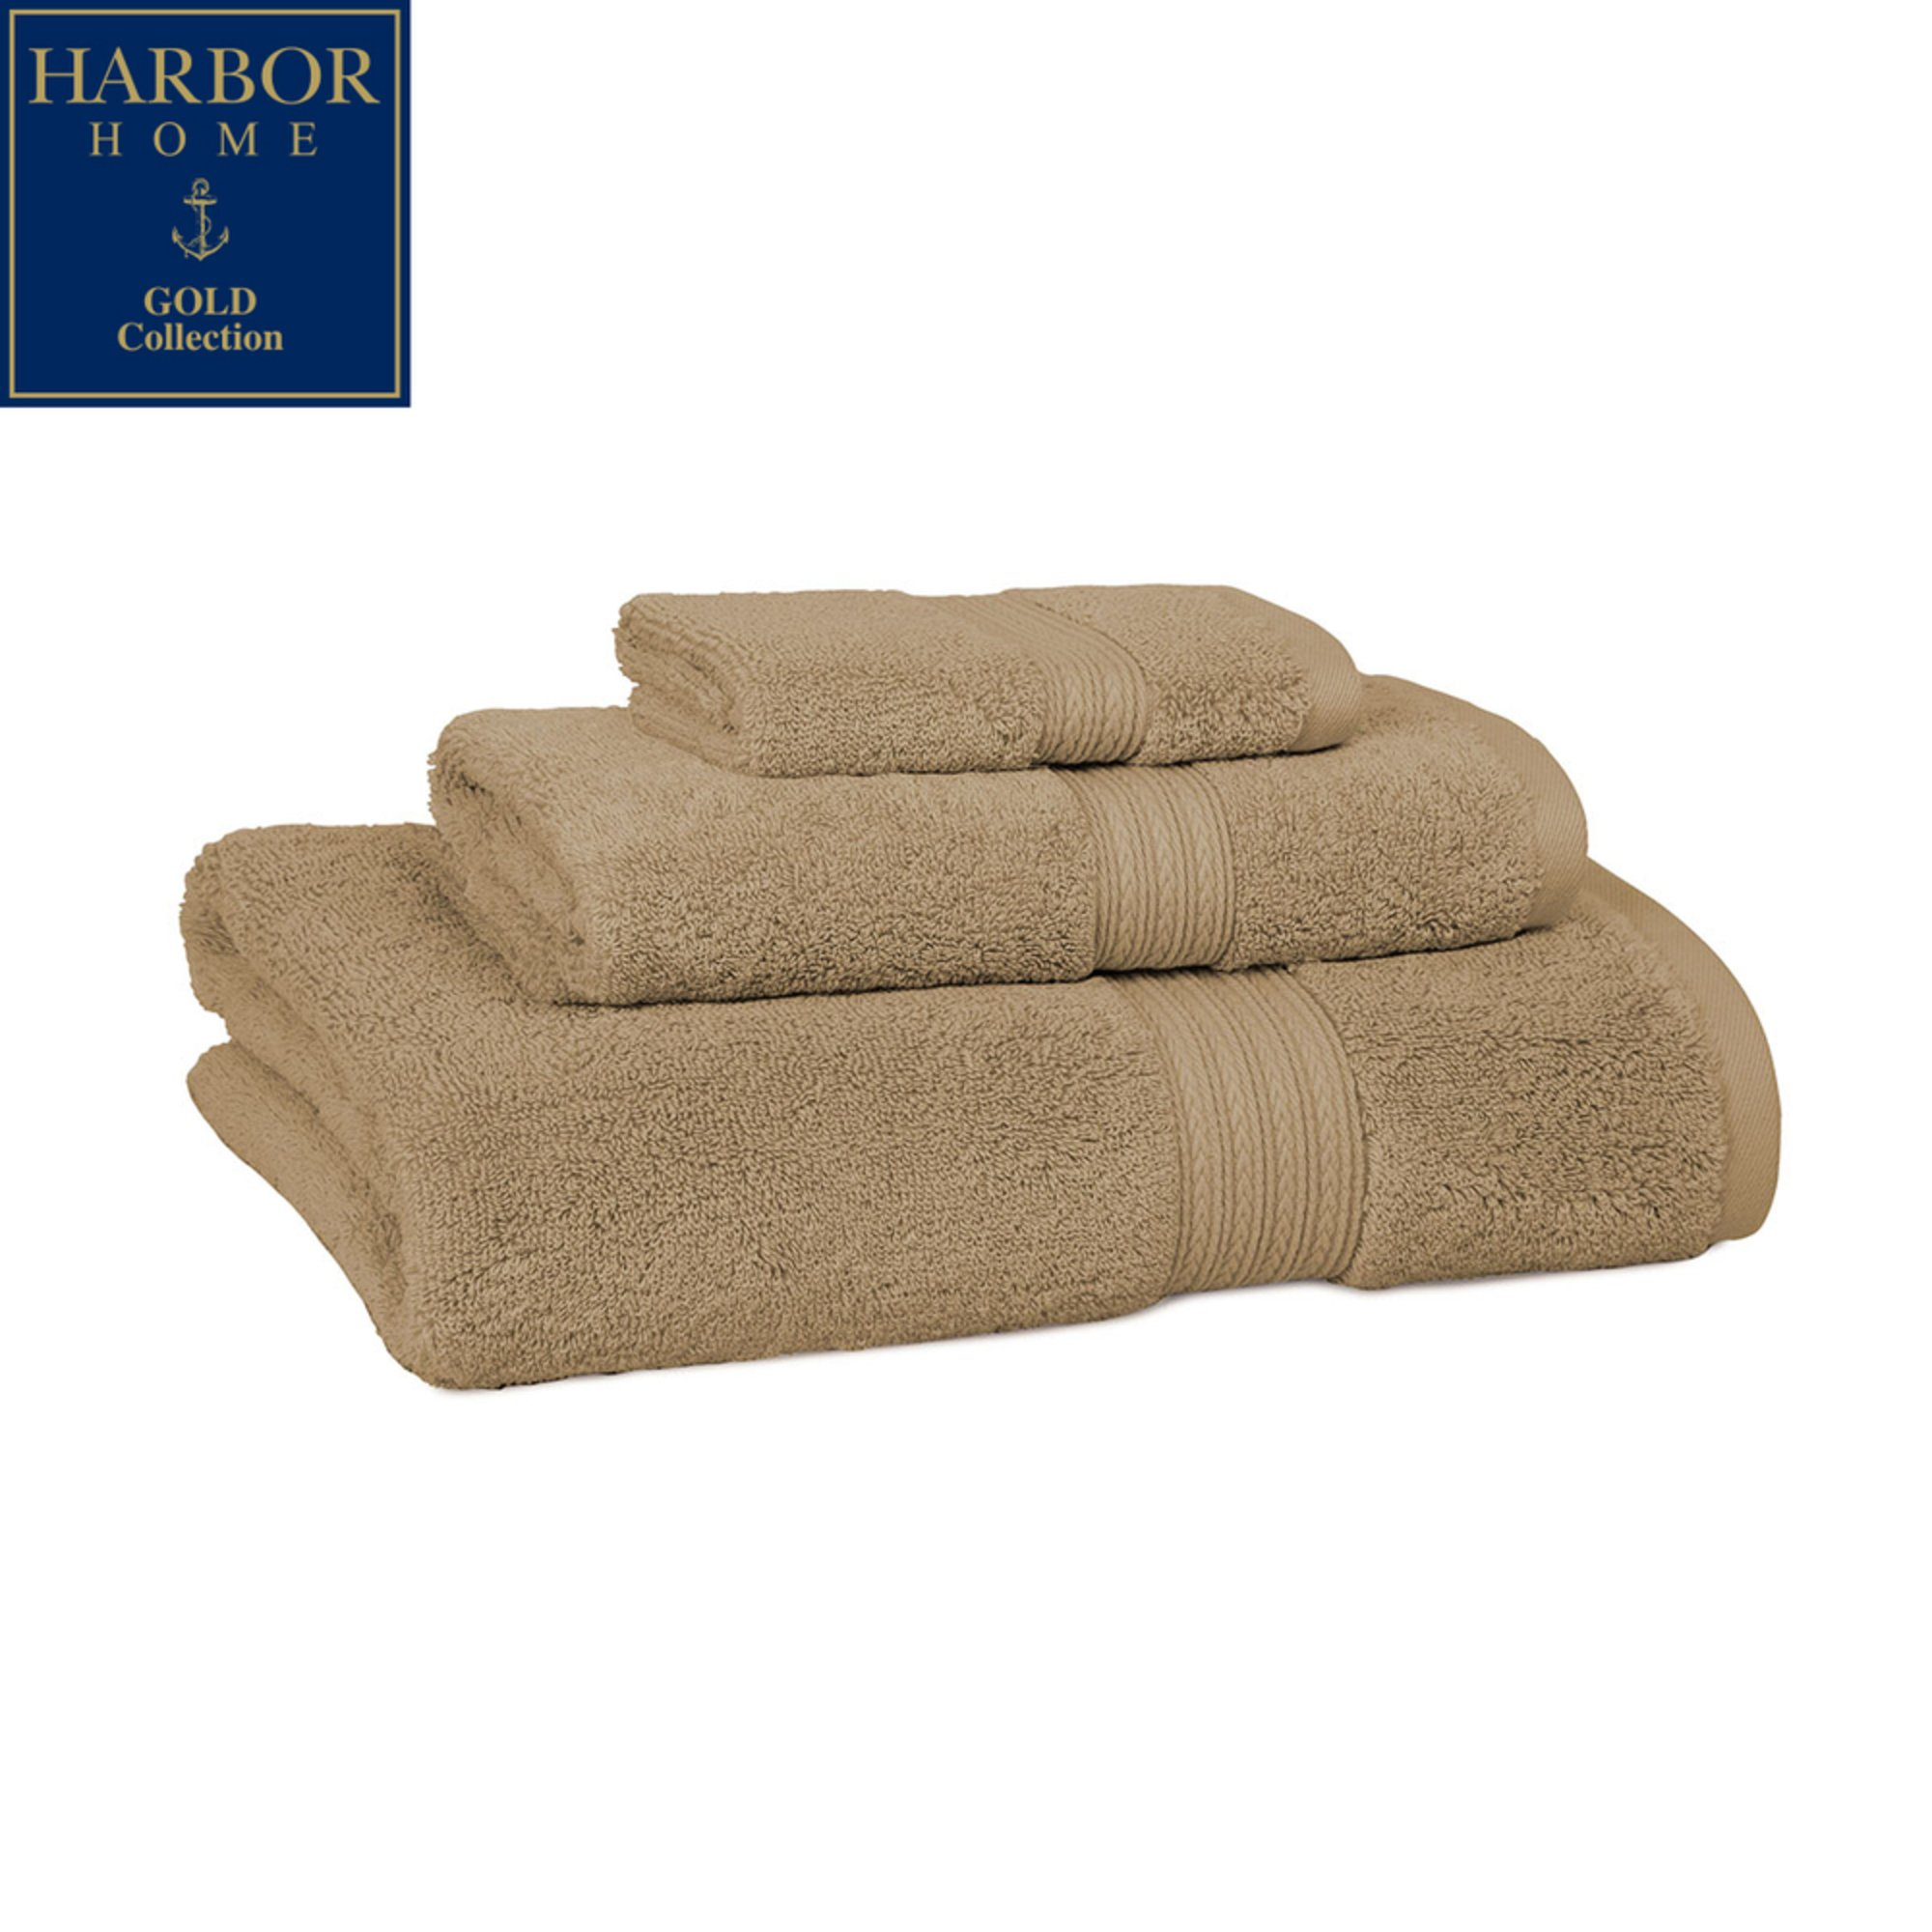 Harbor Home Towel Bath Towels For The Home Shop Your Navy